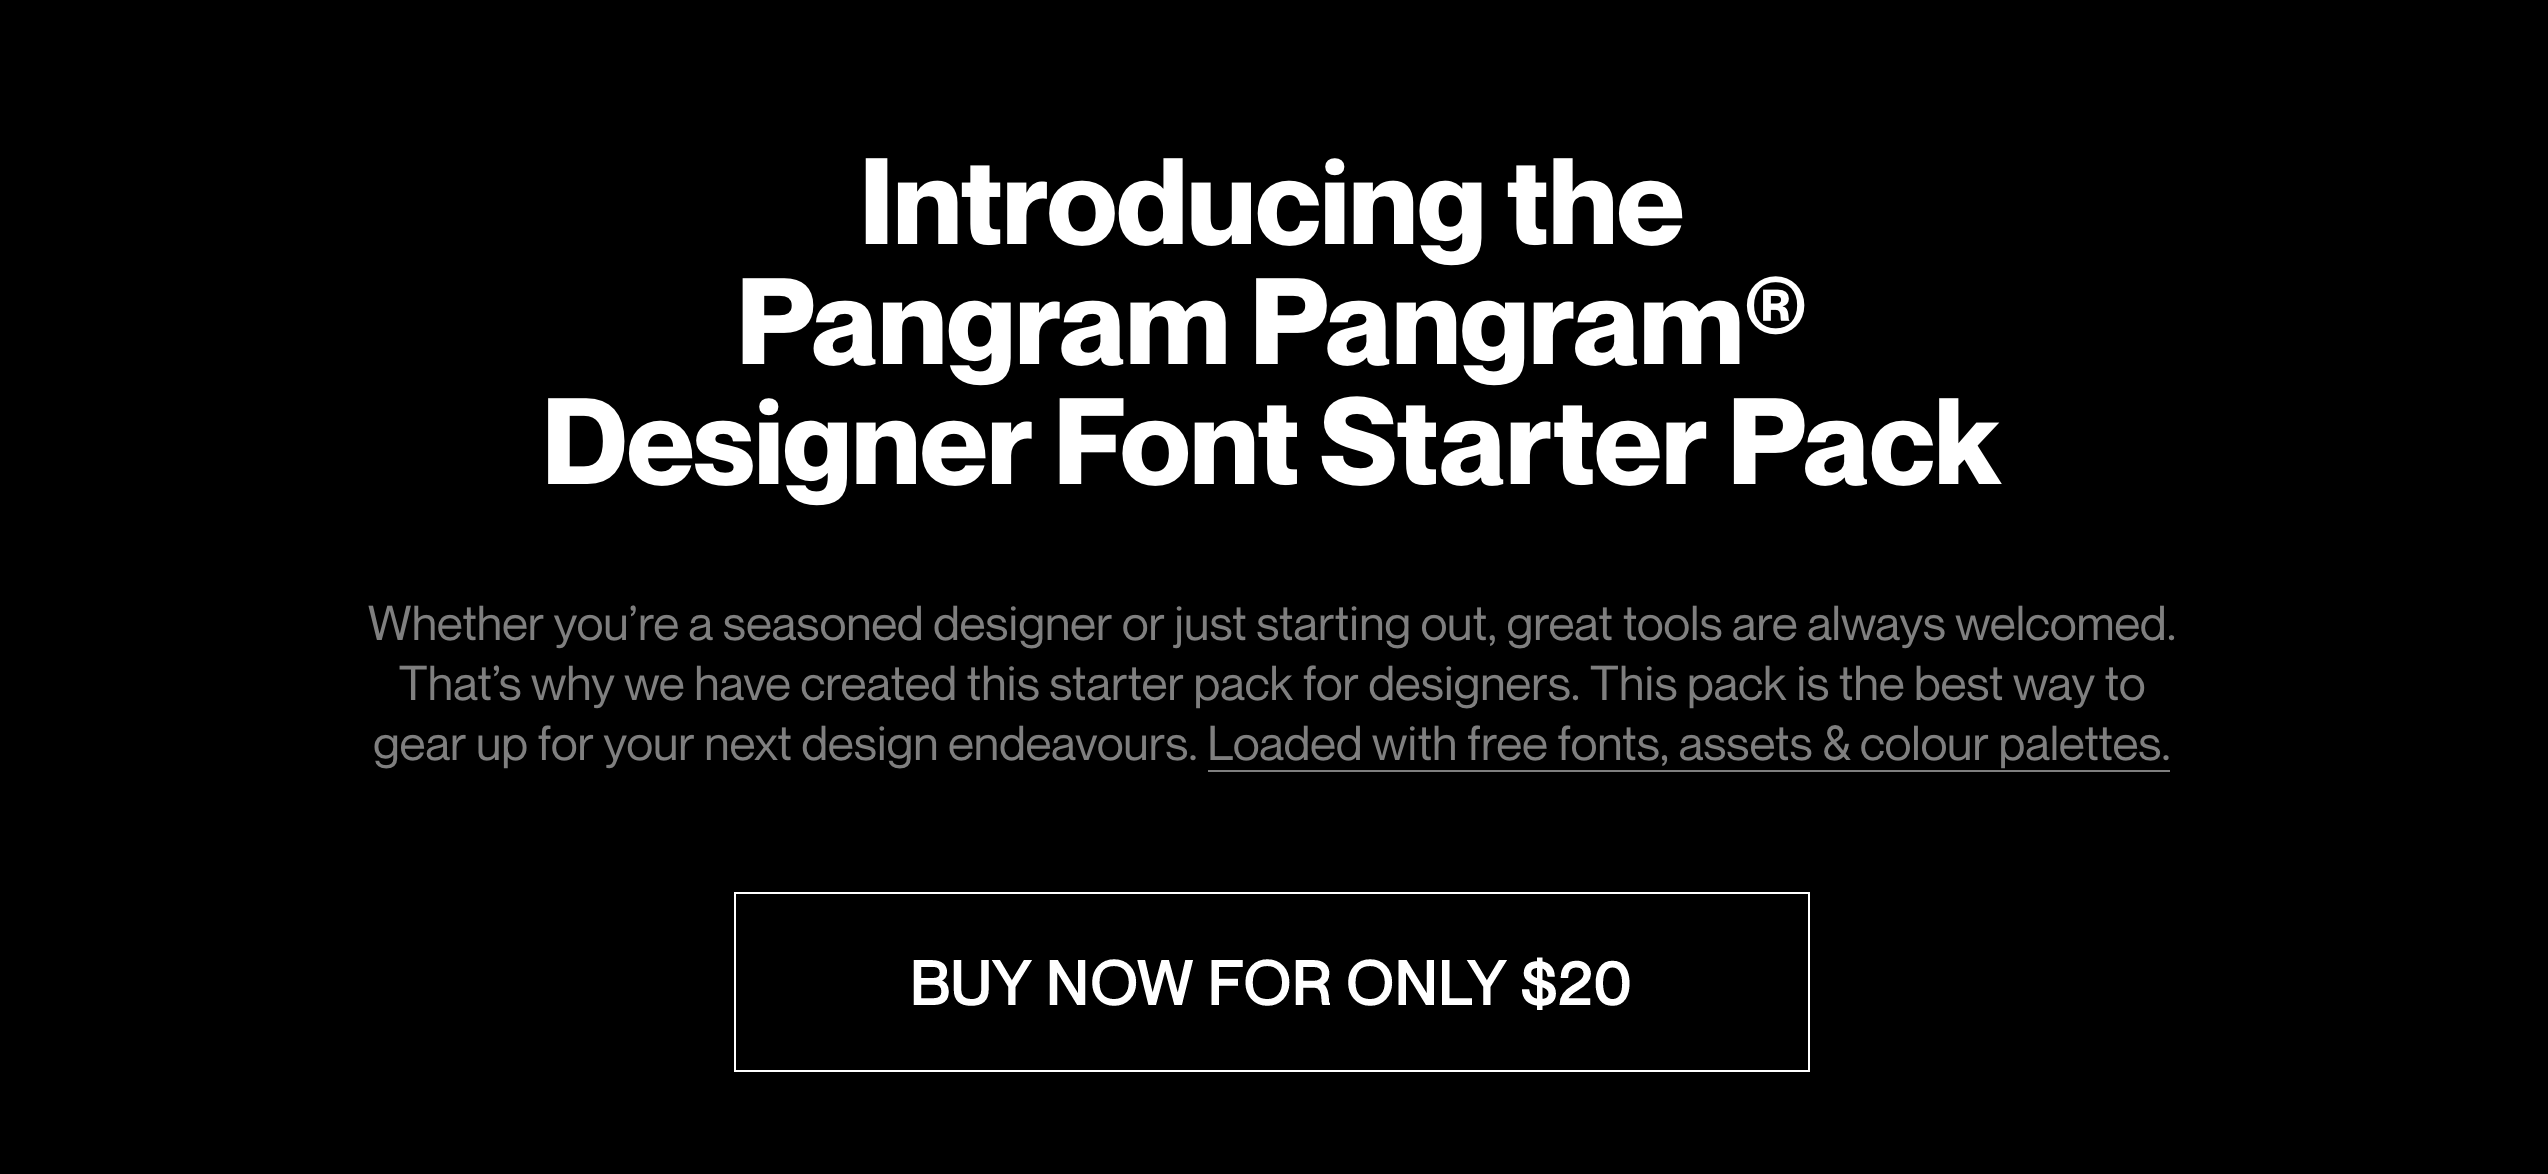 The new Pangram Pangram starter pack includes 16 families for only $20.